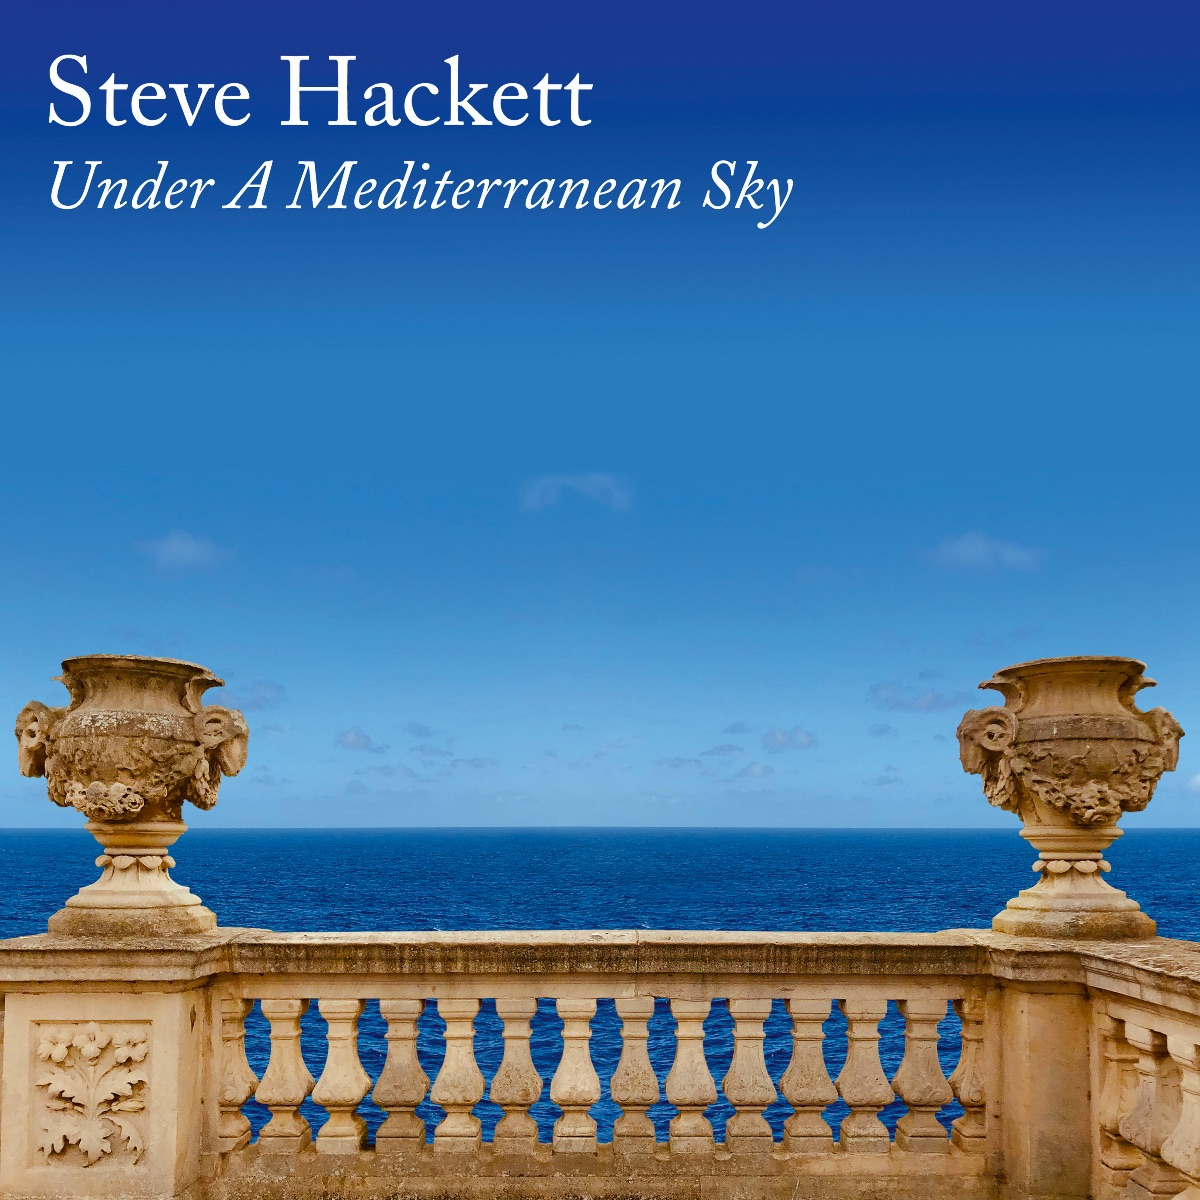 Steve Hackett Launches Video for 'Andalusian Heart'; First Track from the New Acoustic Album